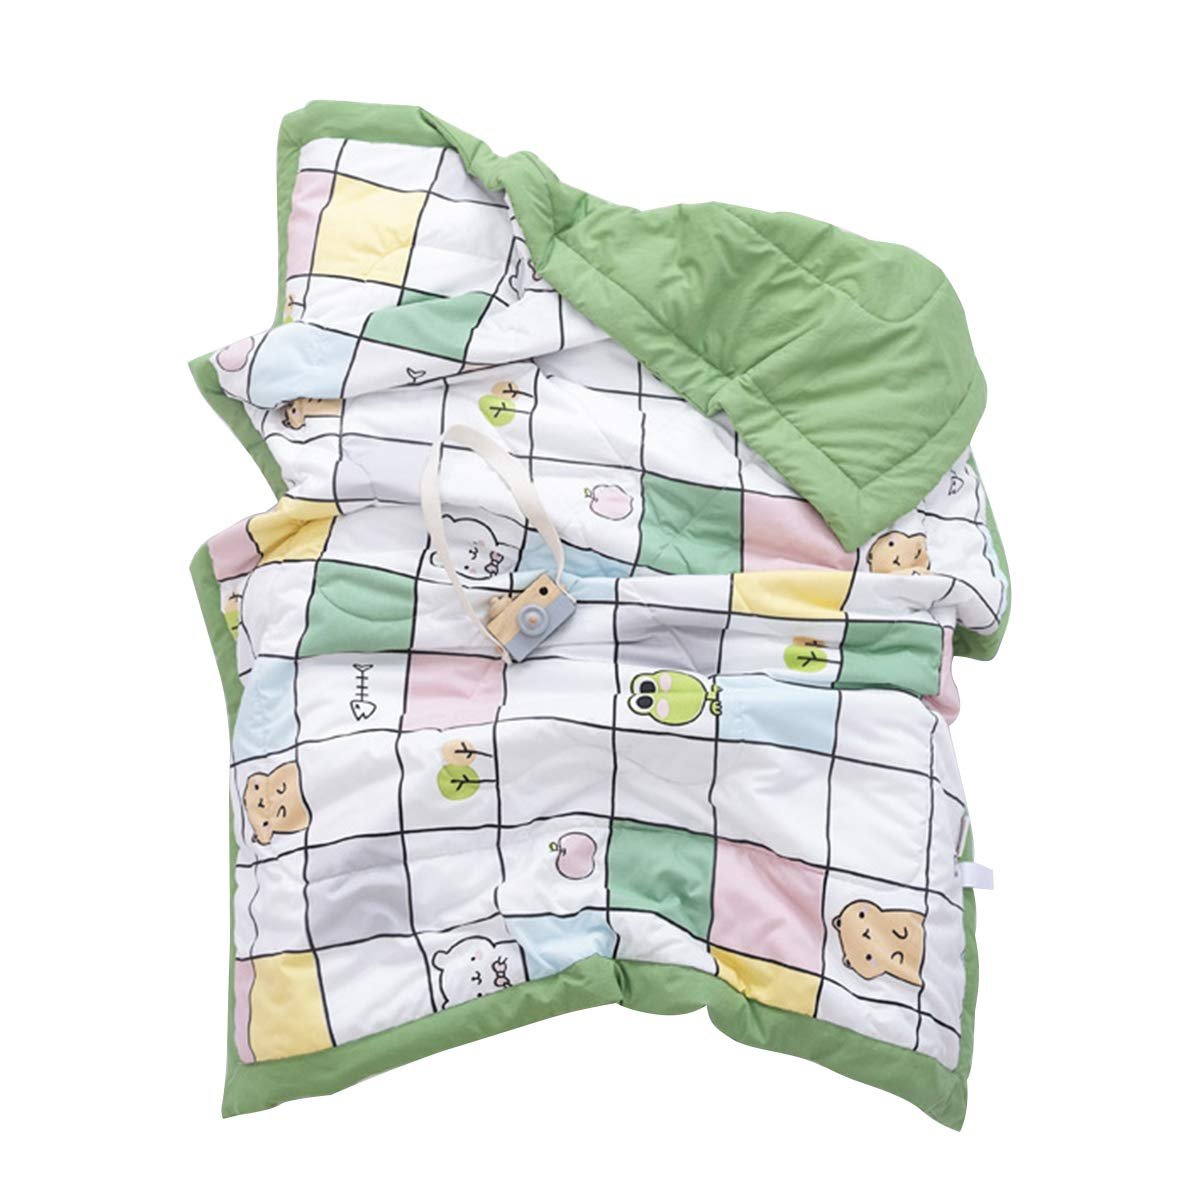 OhhGo Toddler Baby Soft Warm Nap Blanket Double-Sided Sleeping Quilt for Kids Boys Girls